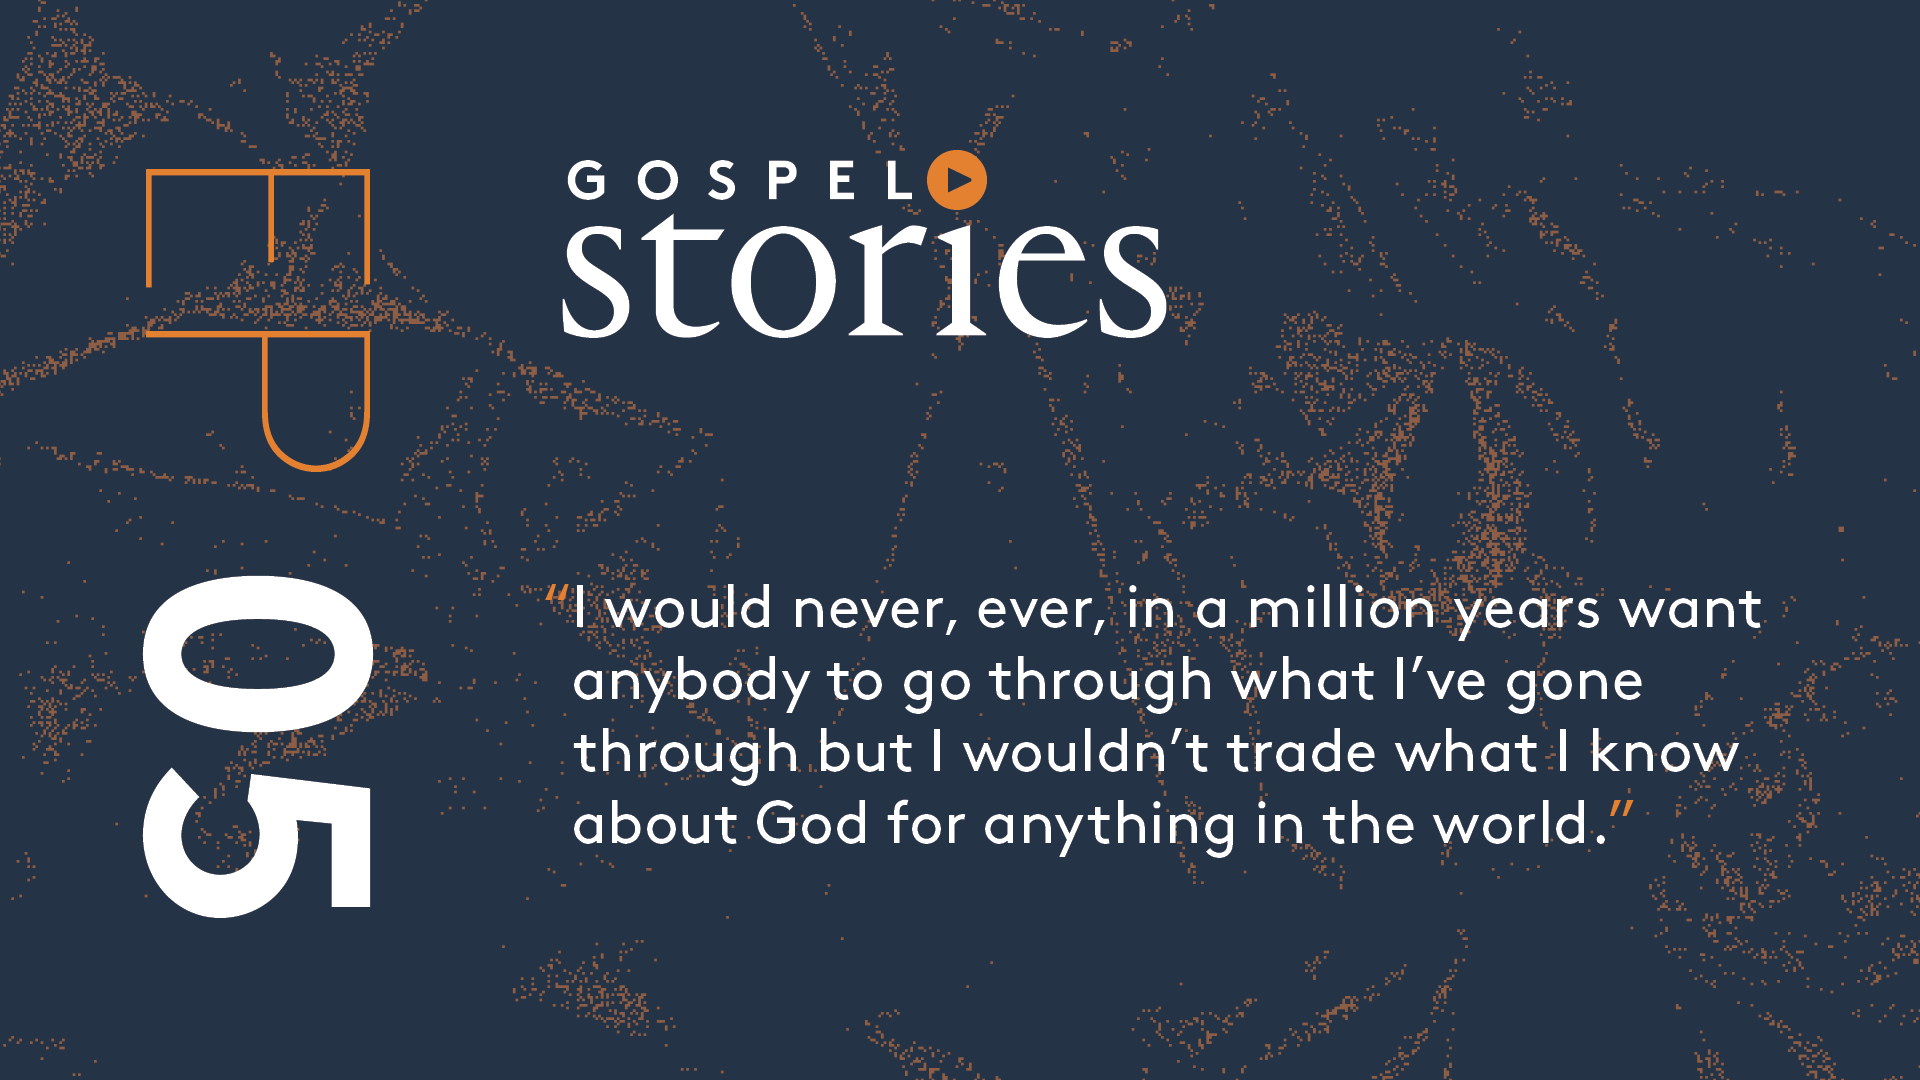 05_Gospel Stories_Web.png